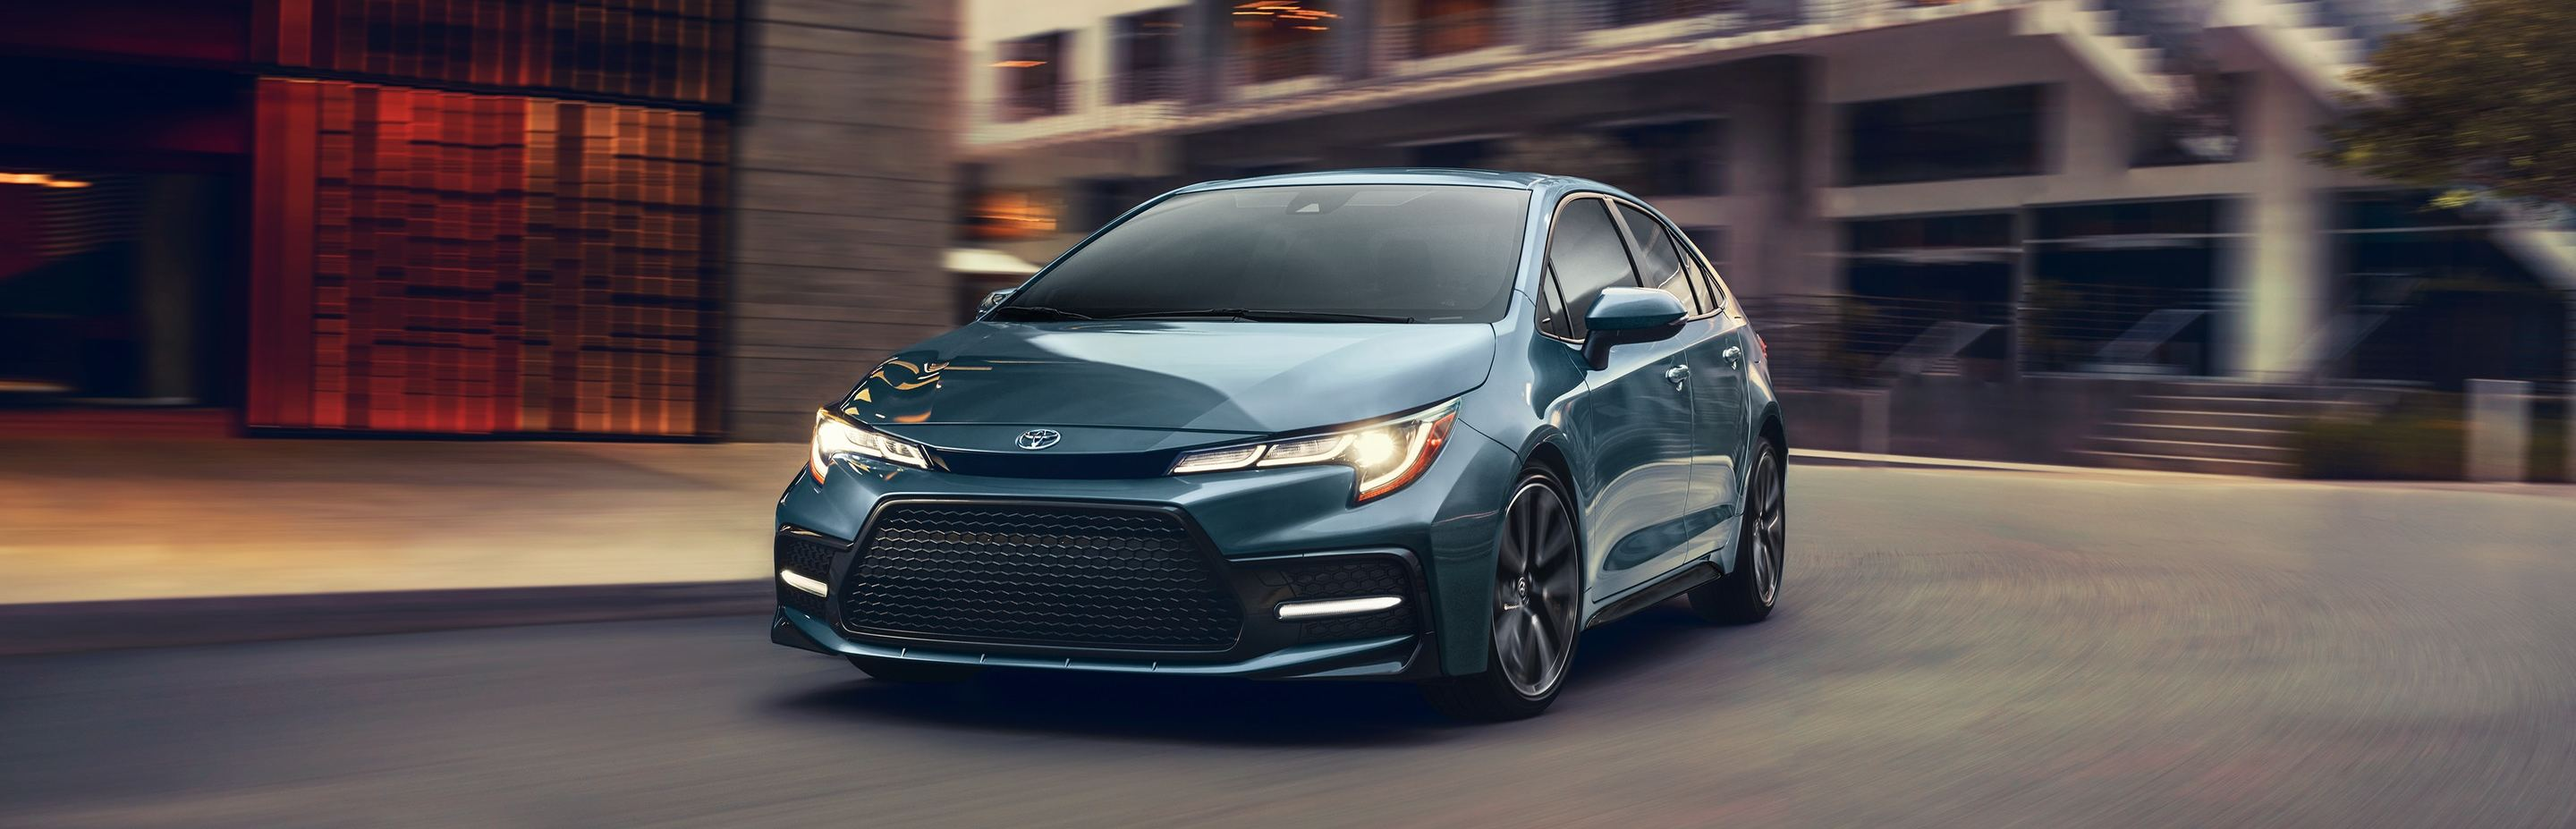 2020 Toyota Corolla for Sale near Hayward, CA